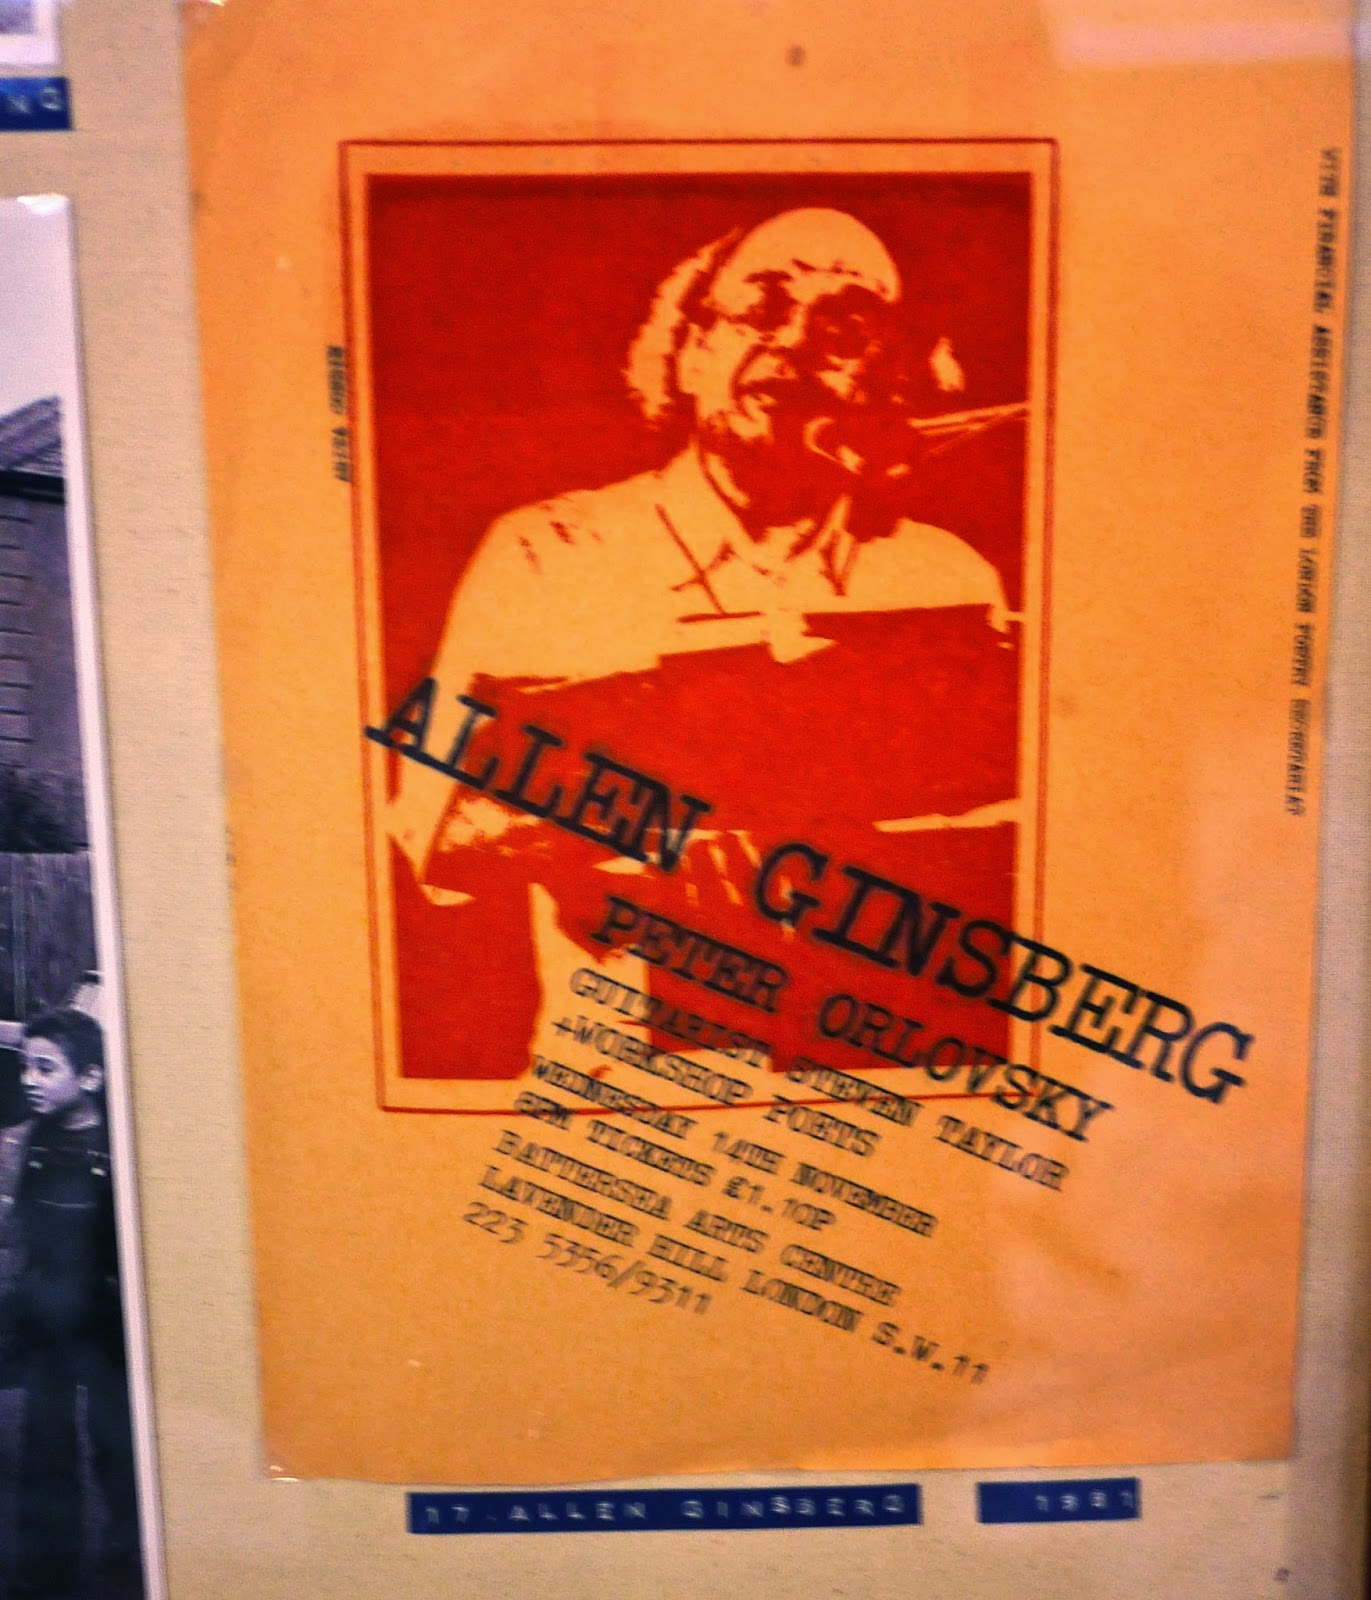 Allen Ginsberg appears at Battersea Arts Centre, Lavender Hill, London SW11, in November 1981.